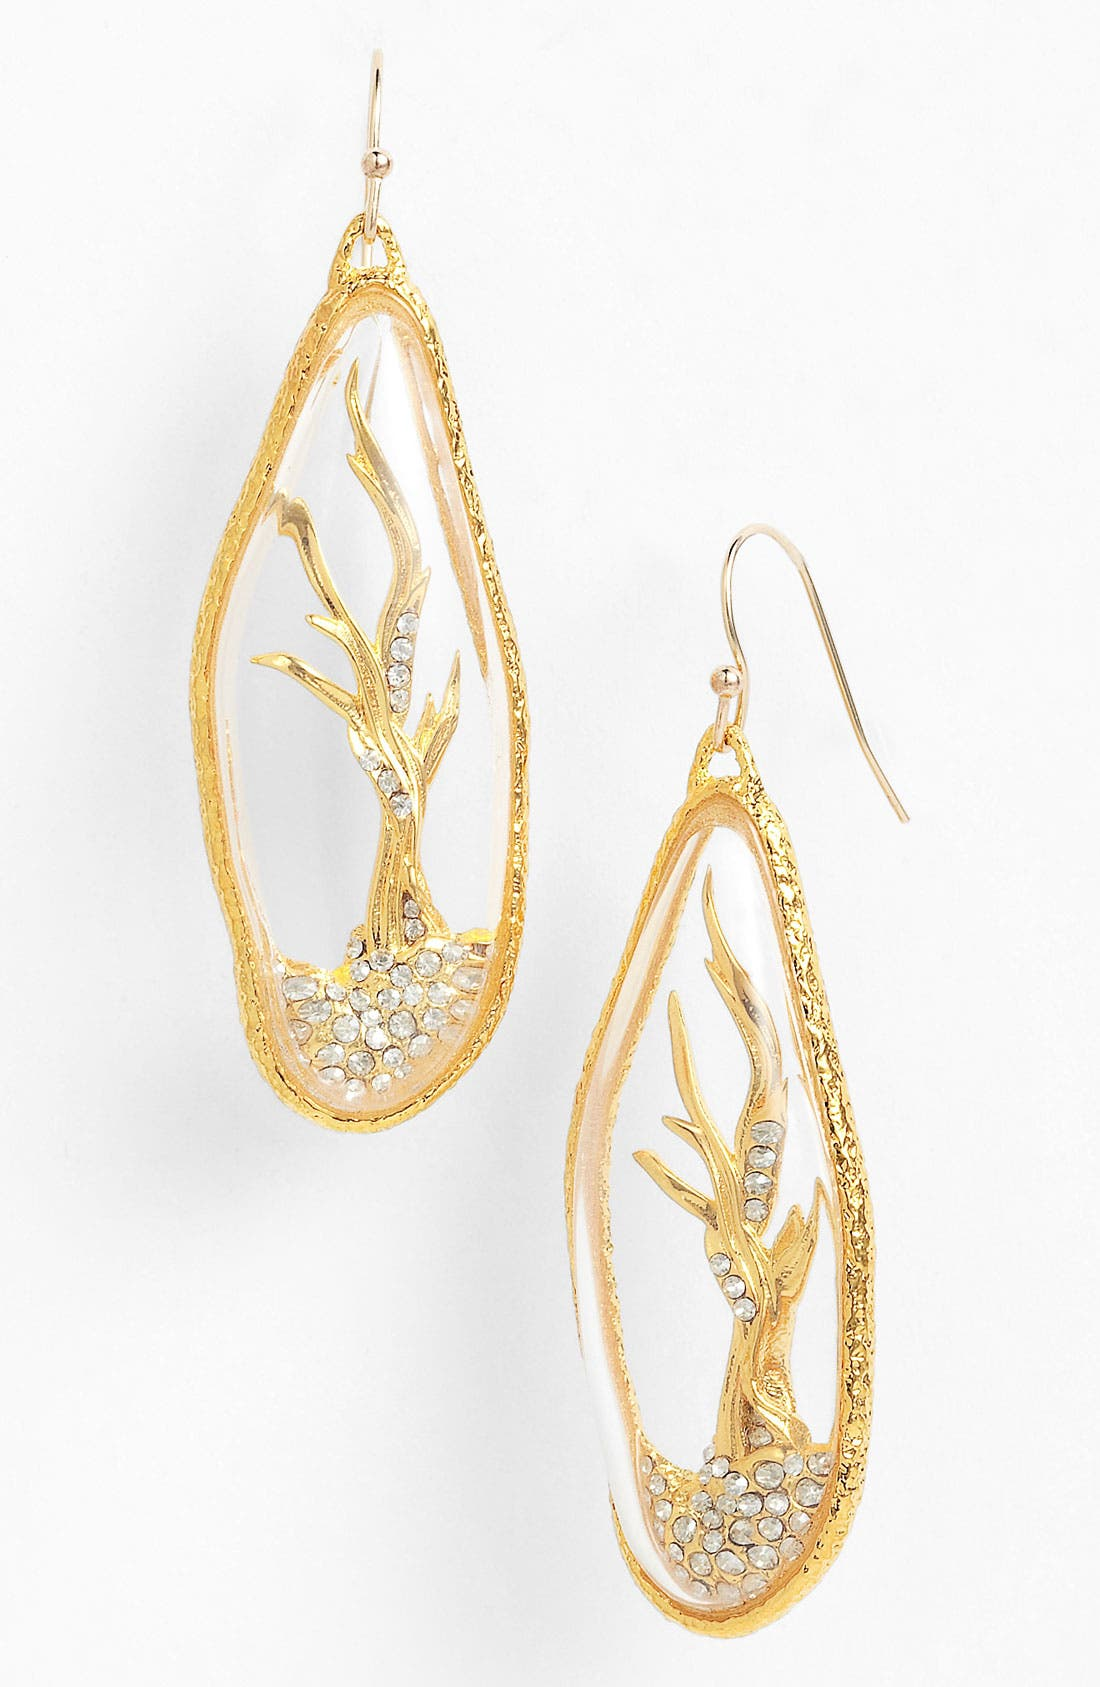 Main Image - Alexis Bittar 'Elements - Siyabona' Reliquary Earrings